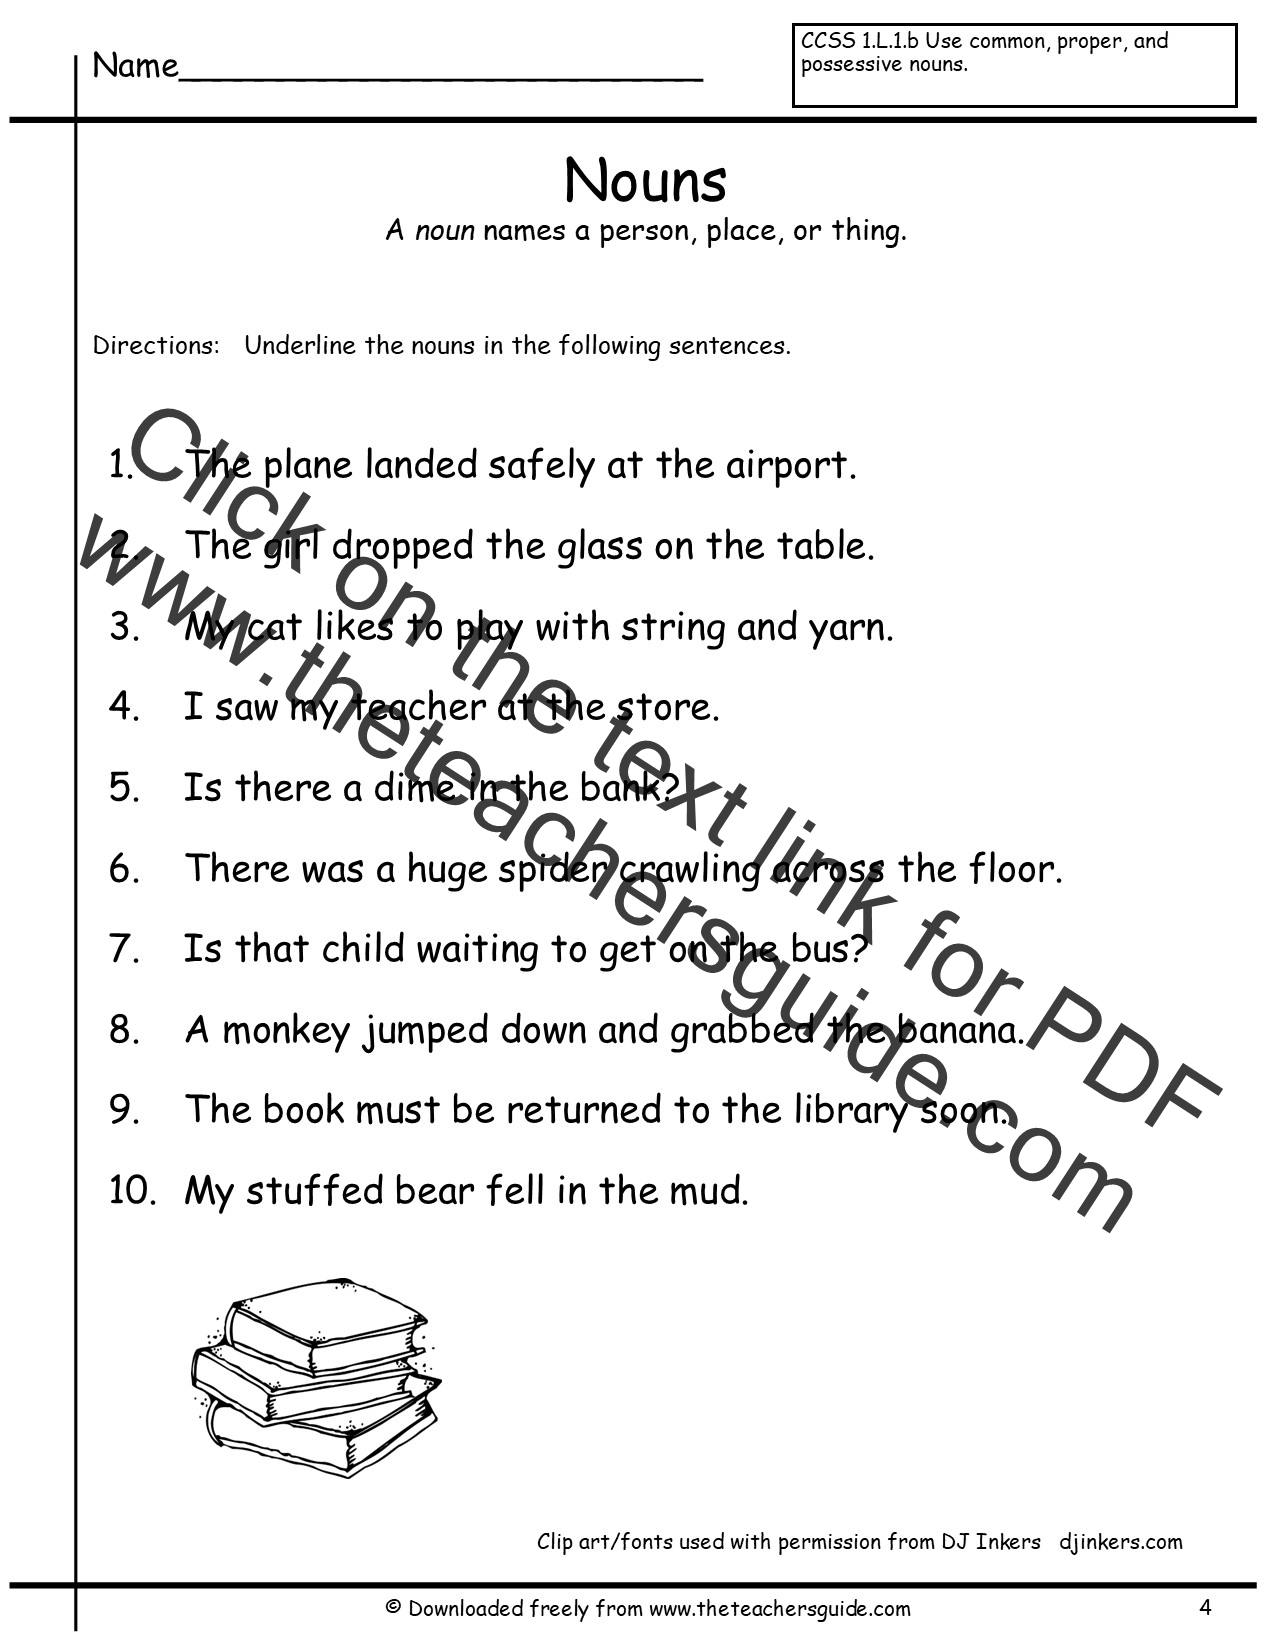 Worksheet Worksheet Of Nouns nouns worksheets from the teachers guide worksheet